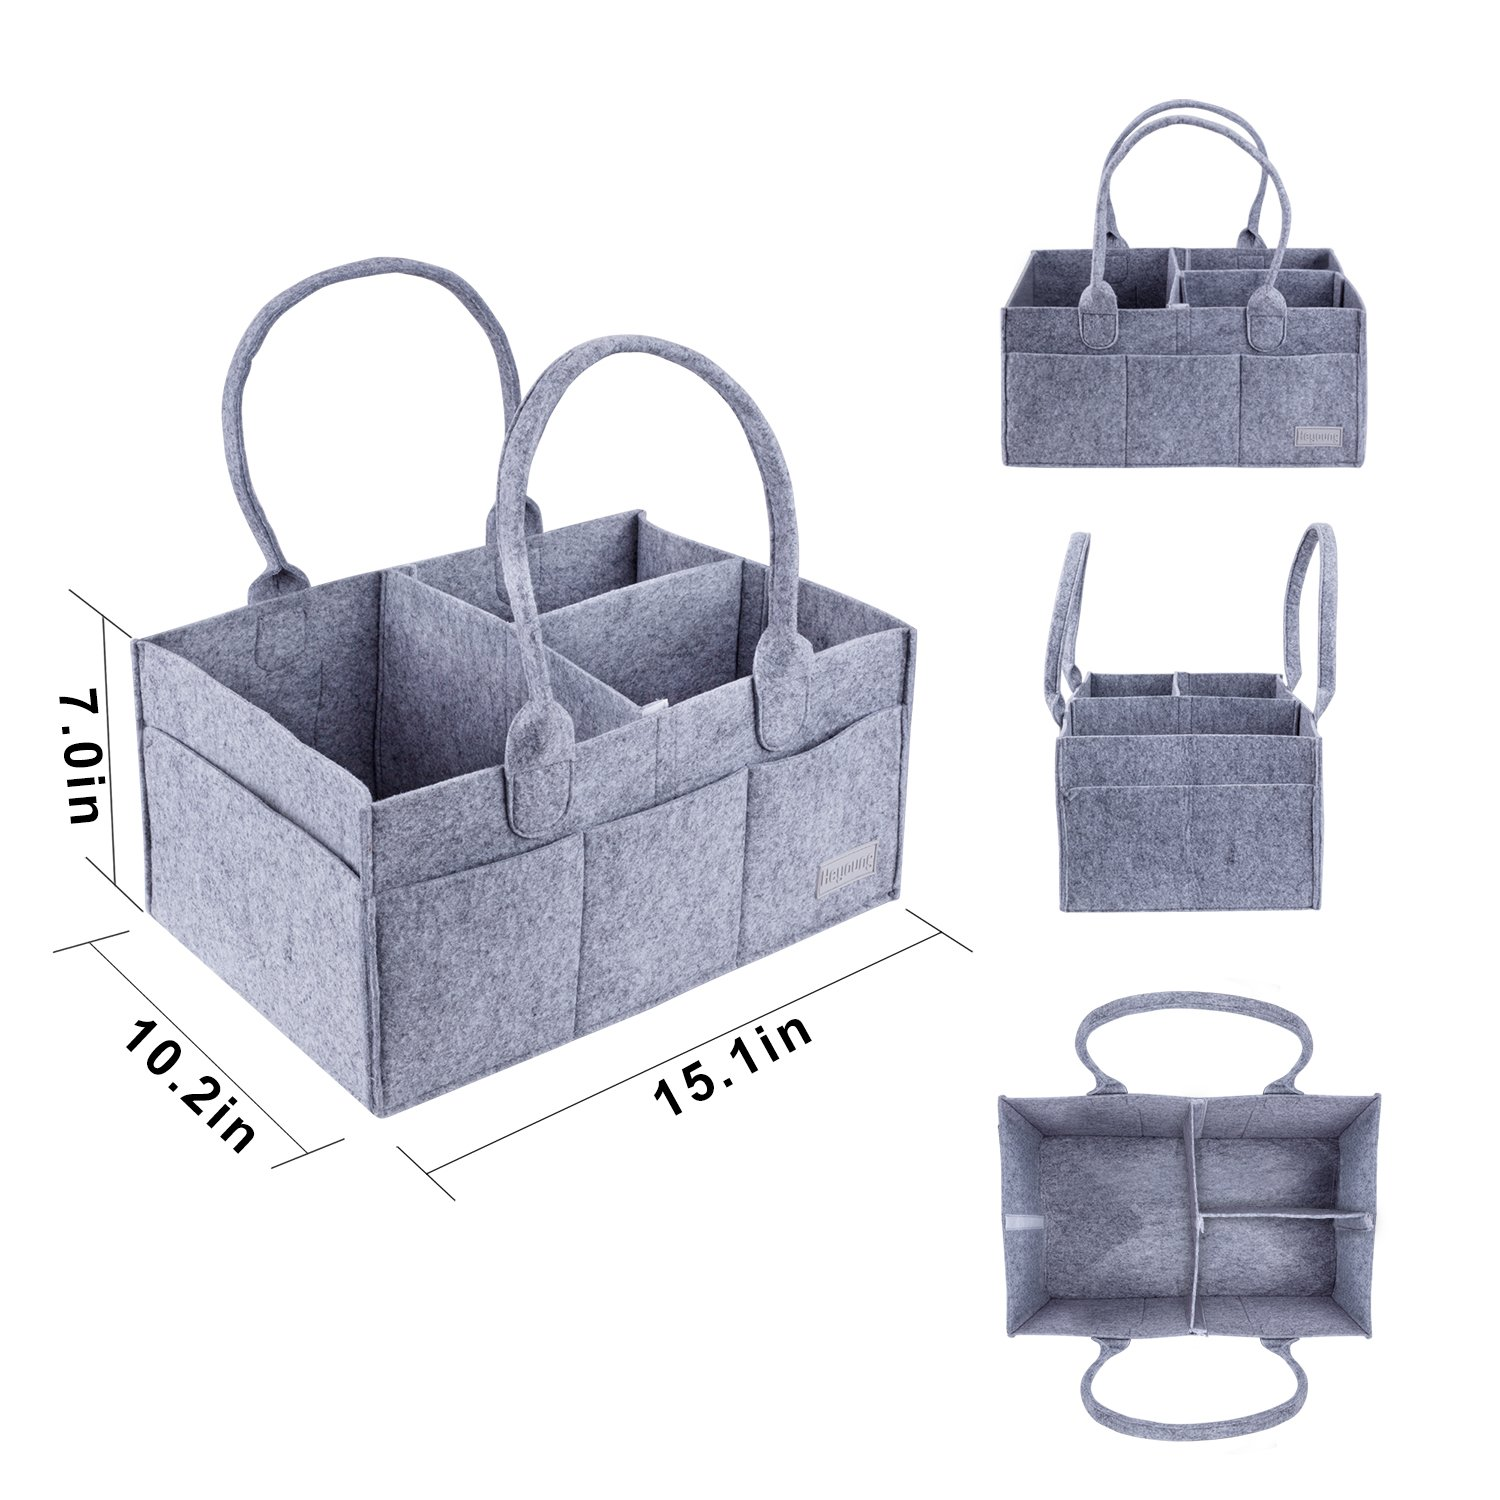 Heyoung Baby Diaper Caddy Foldable Portable Nursery Organizer Storage Bin Felt Basket Tote Bag for Diapers Grey Baby Wipes DC-01-1 Changing Table Home Organization